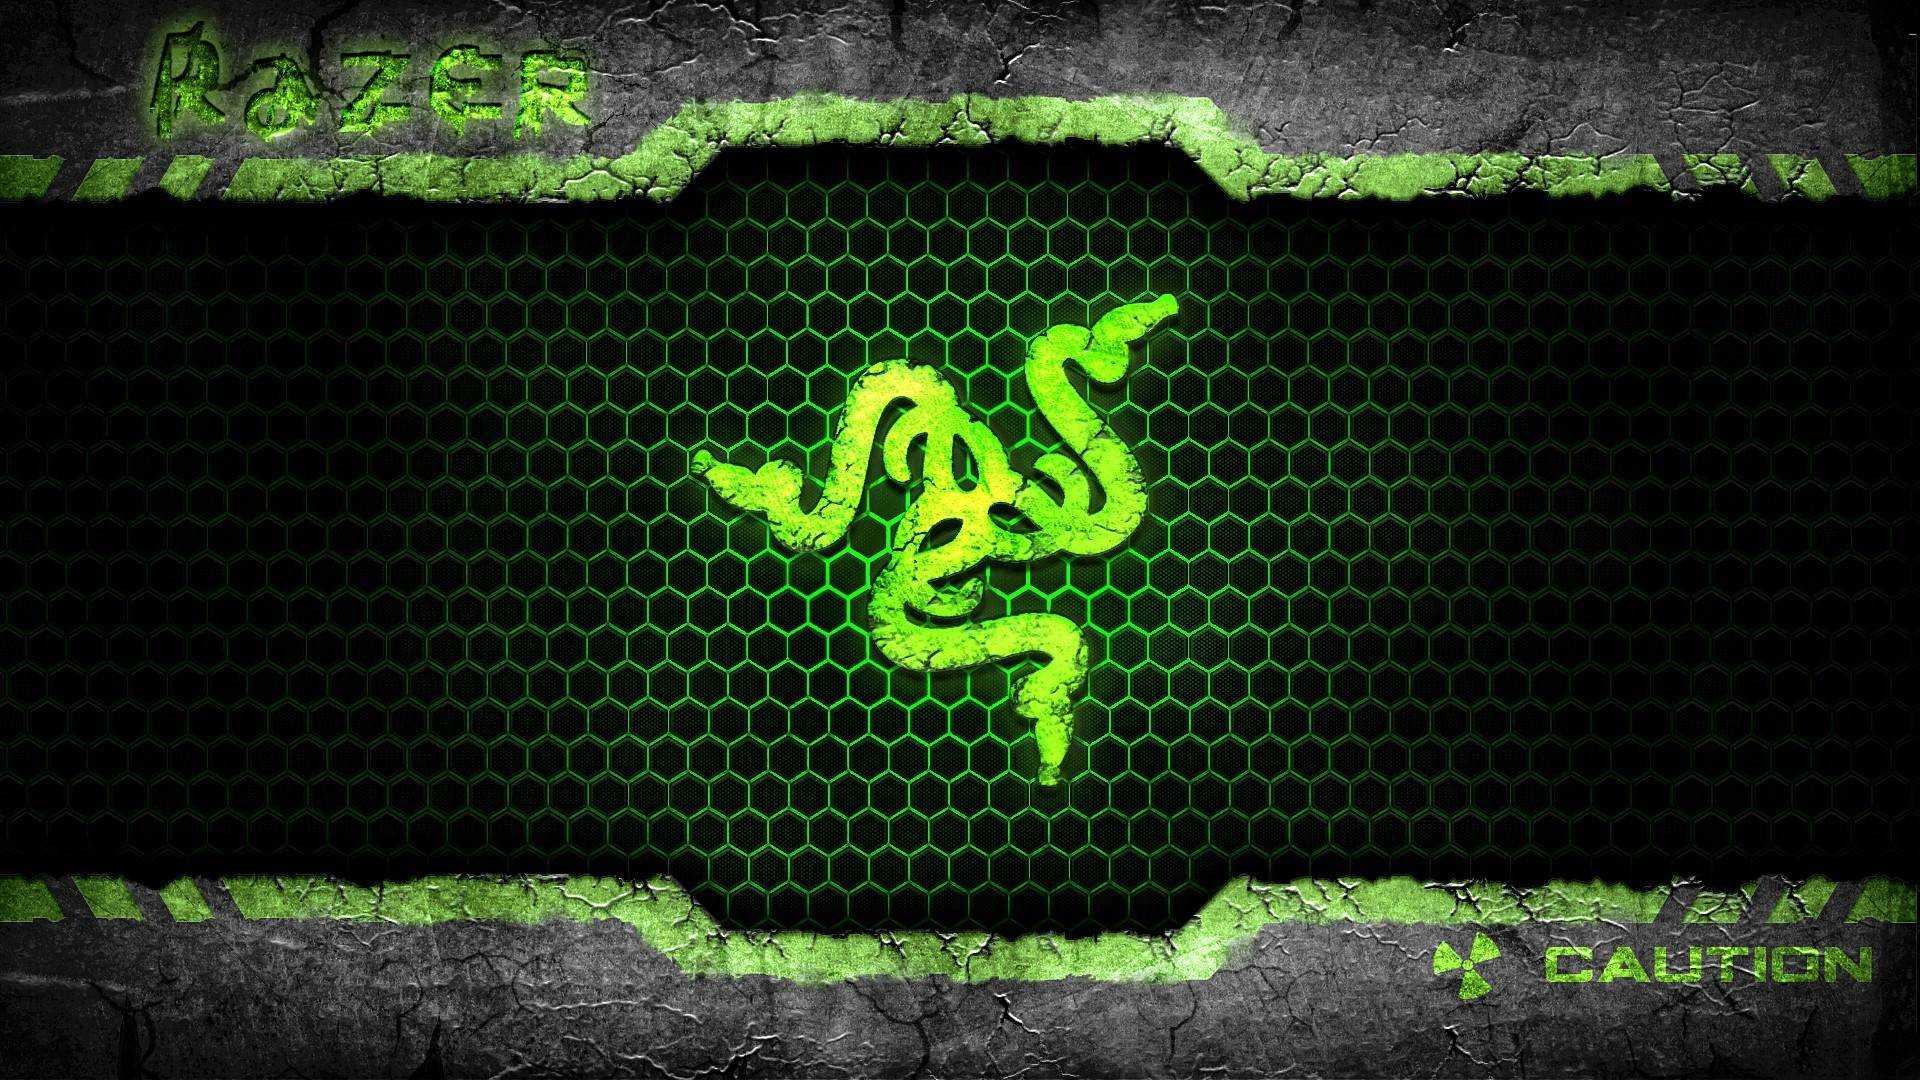 Razer Wallpaper